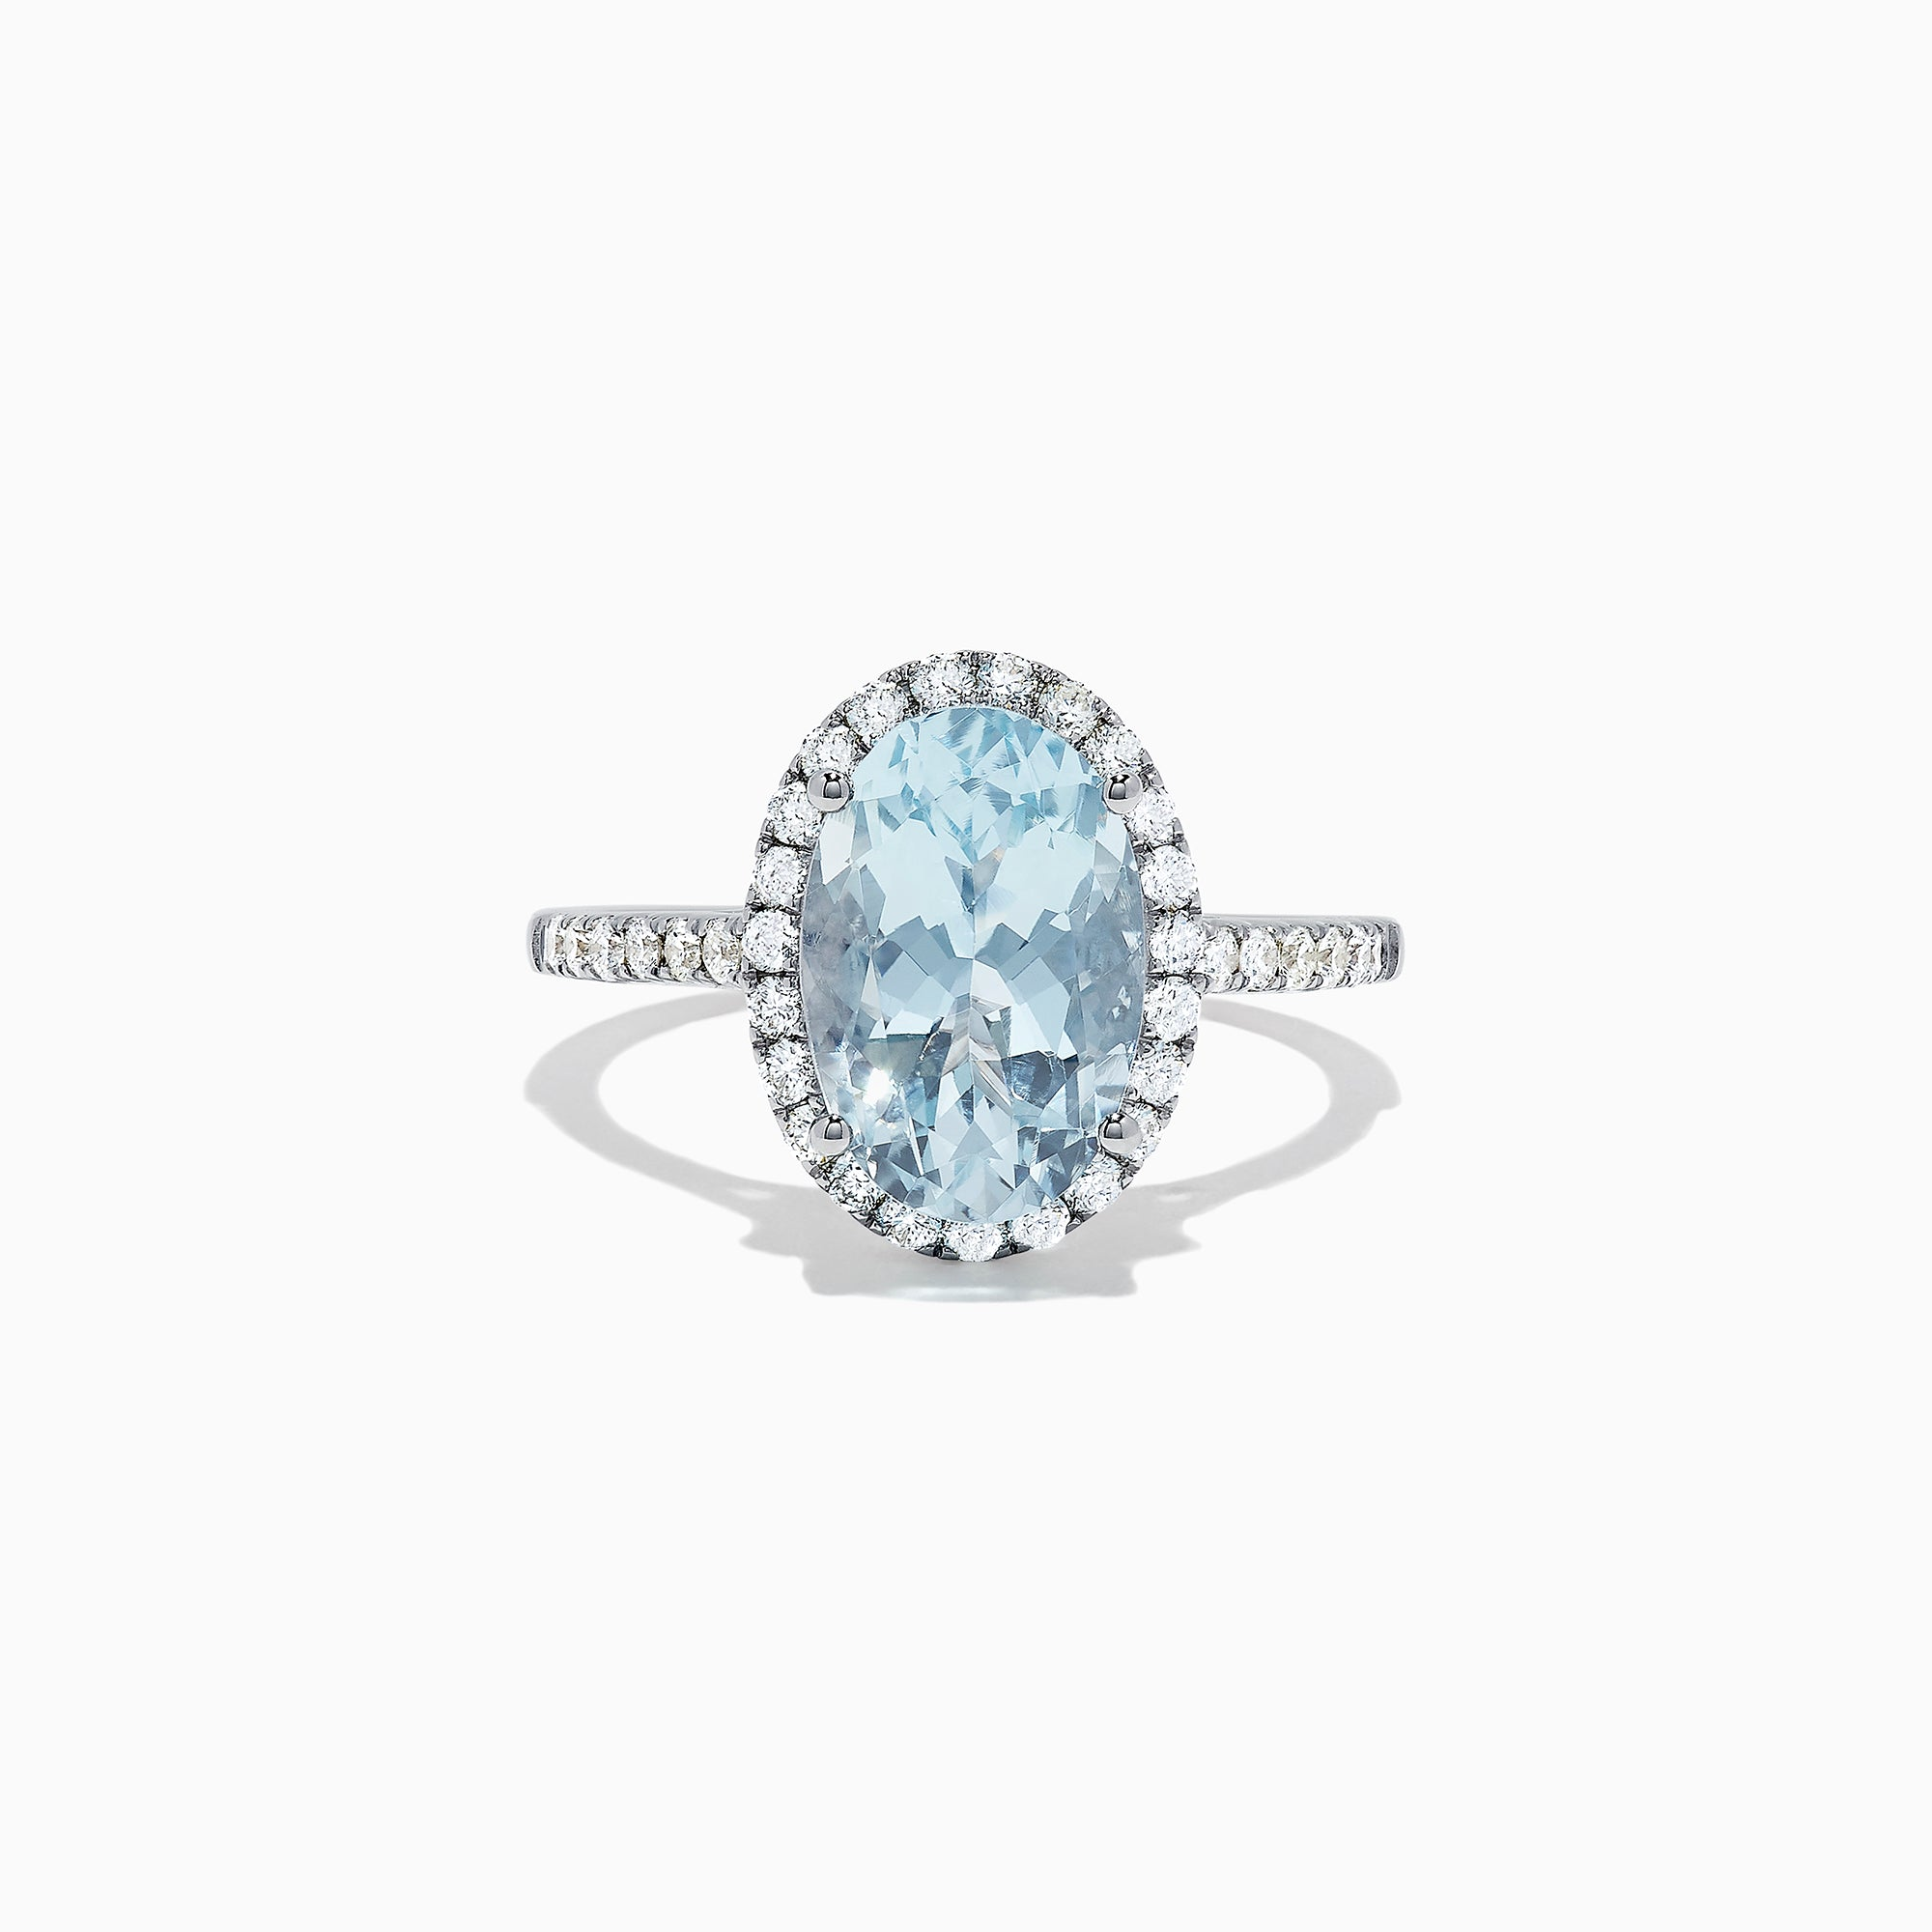 Effy Aquarius 14K White Gold Aquamarine and Diamond Ring, 3.45 TCW